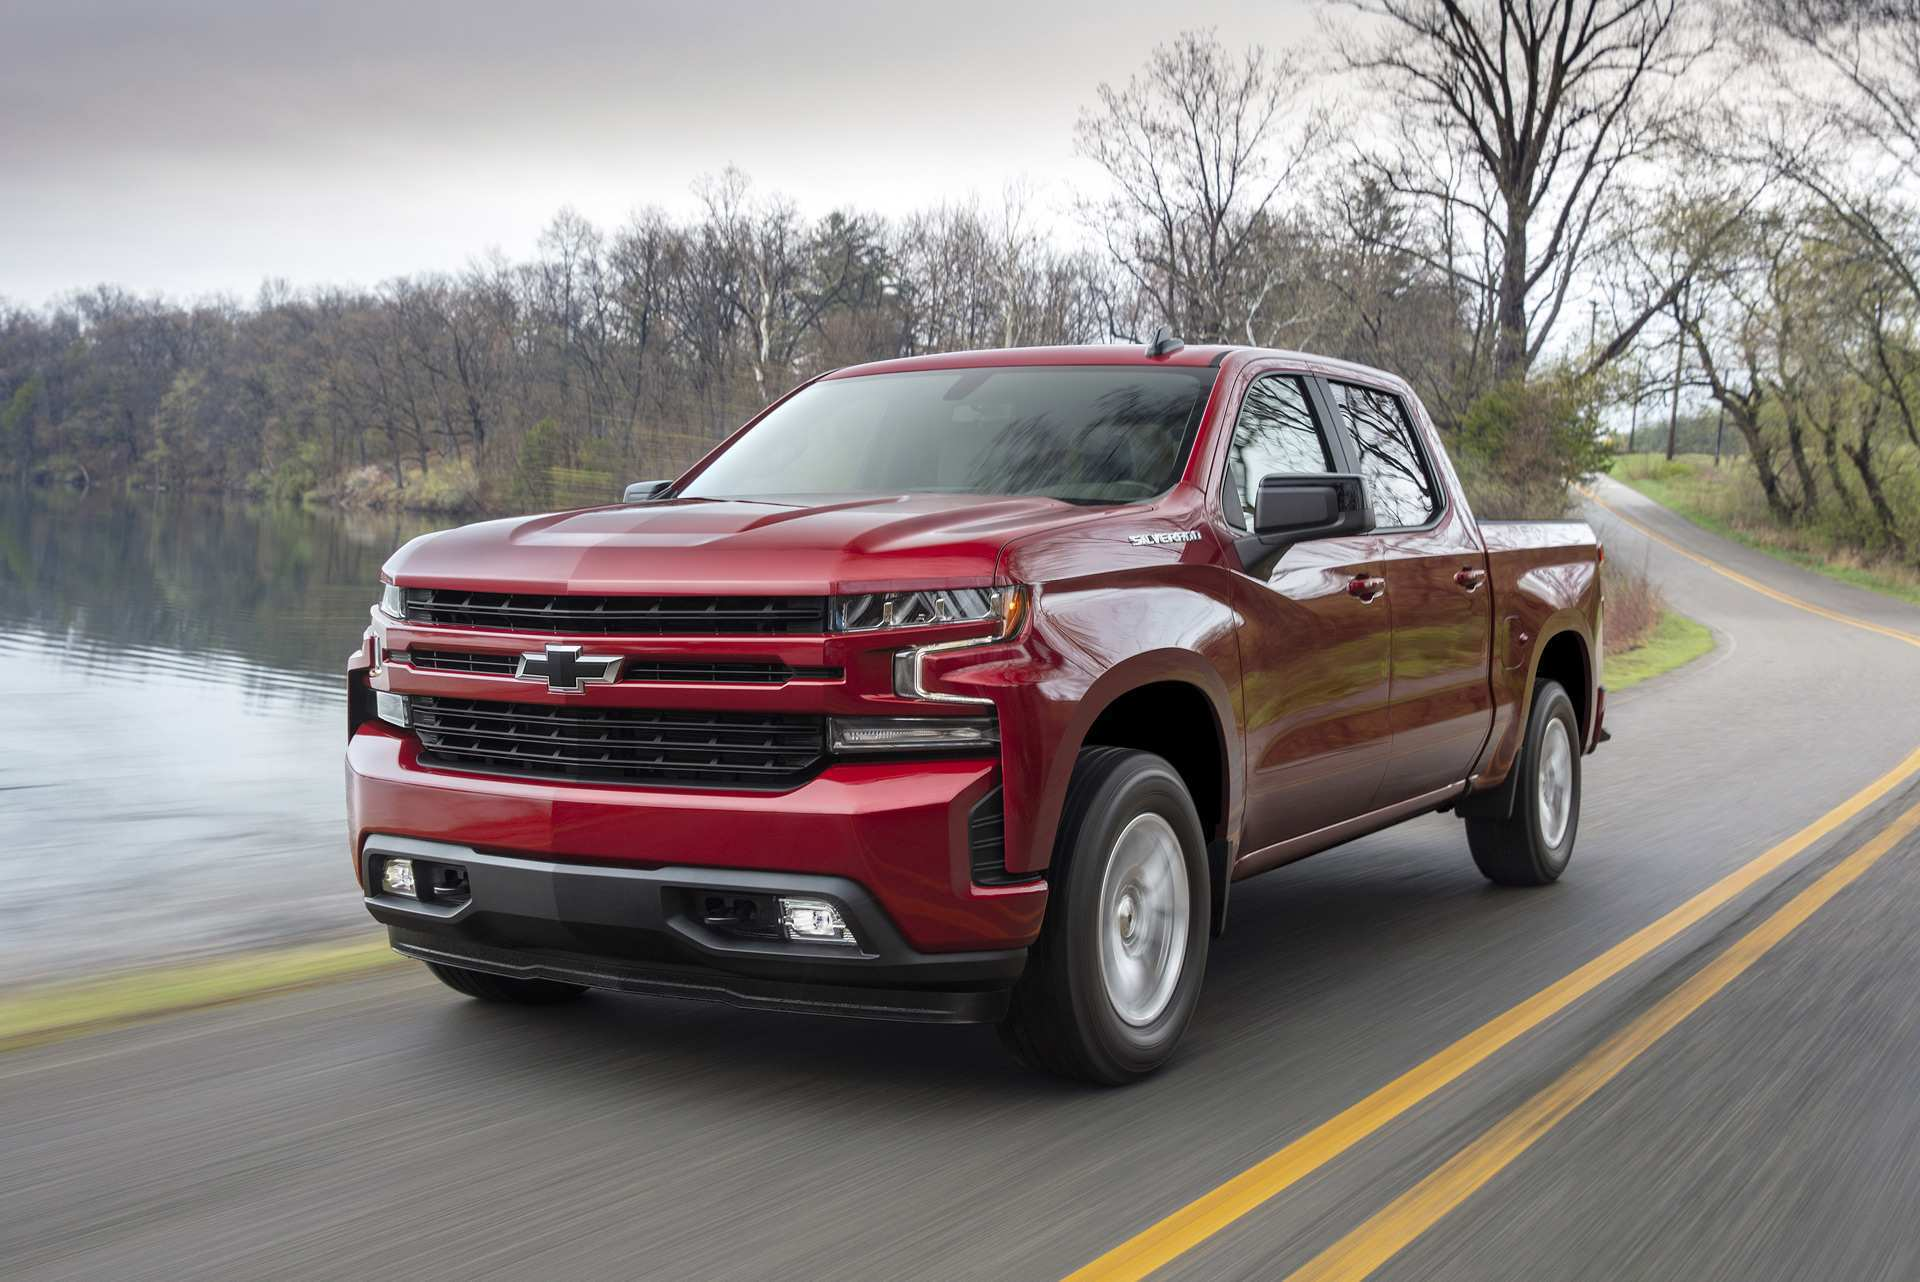 35 New 2019 Chevy Silverado Interior